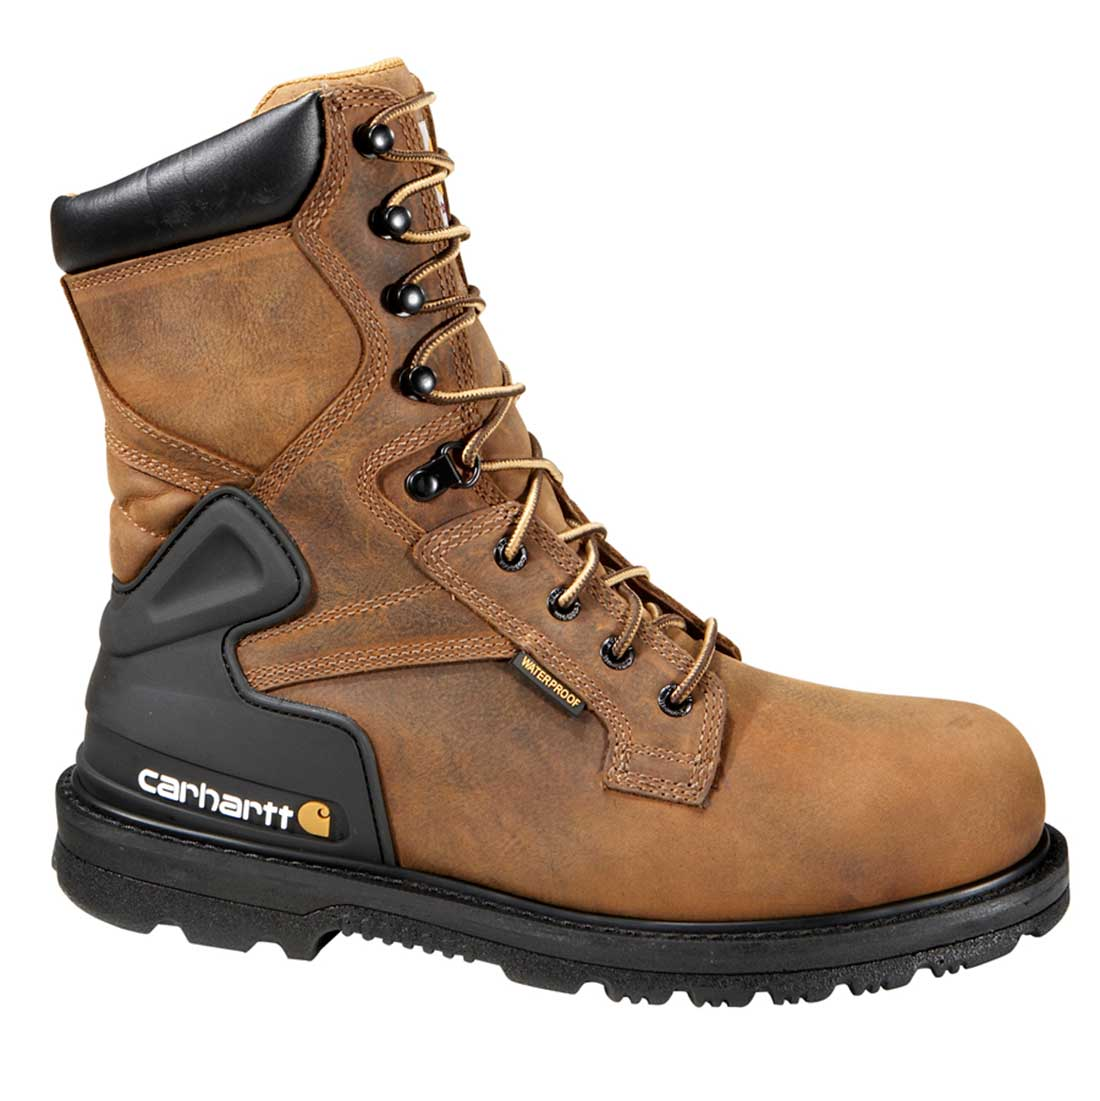 Carhartt Core Men's Bison Brown Leather Waterproof Steel Safety Toe 8-inch lace-up Work Boot